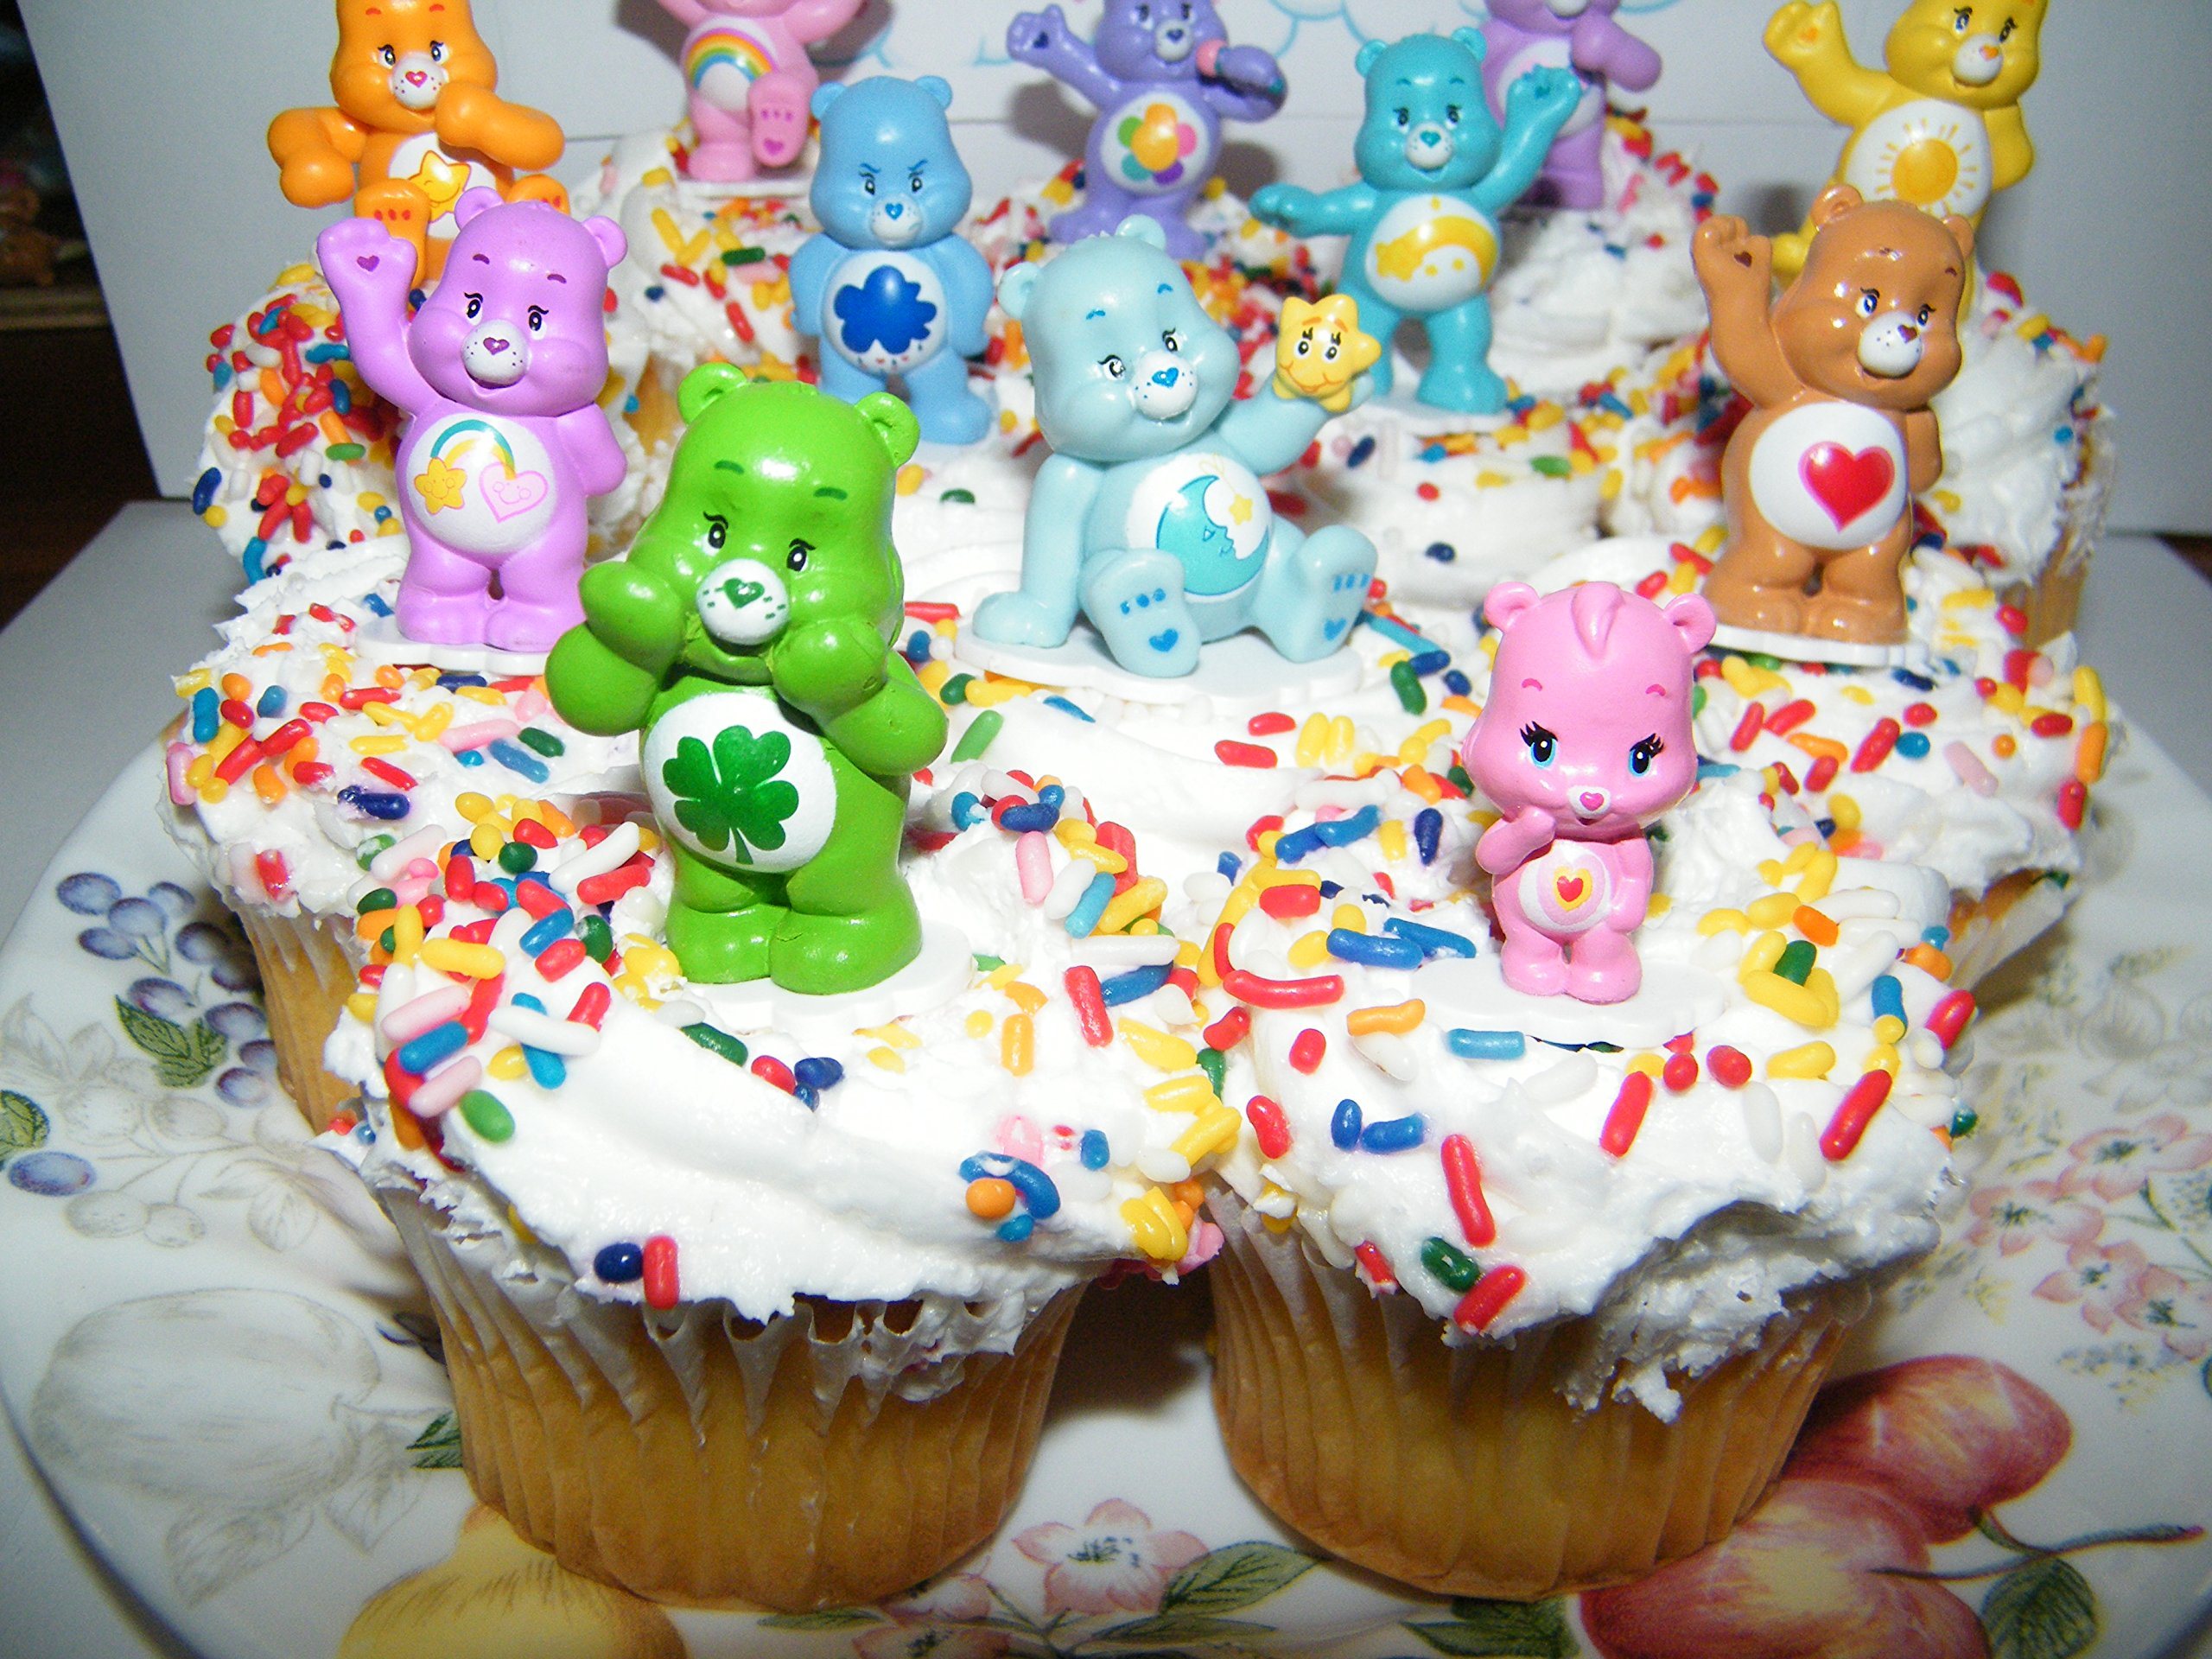 Care Bears Cupcake Topper Birthday Party Decorations Set of 12 Figures with Share Bear, Wonderheart Bear, Grumpy Bear, Wish Bear and Many More! by Care Bears (Image #2)